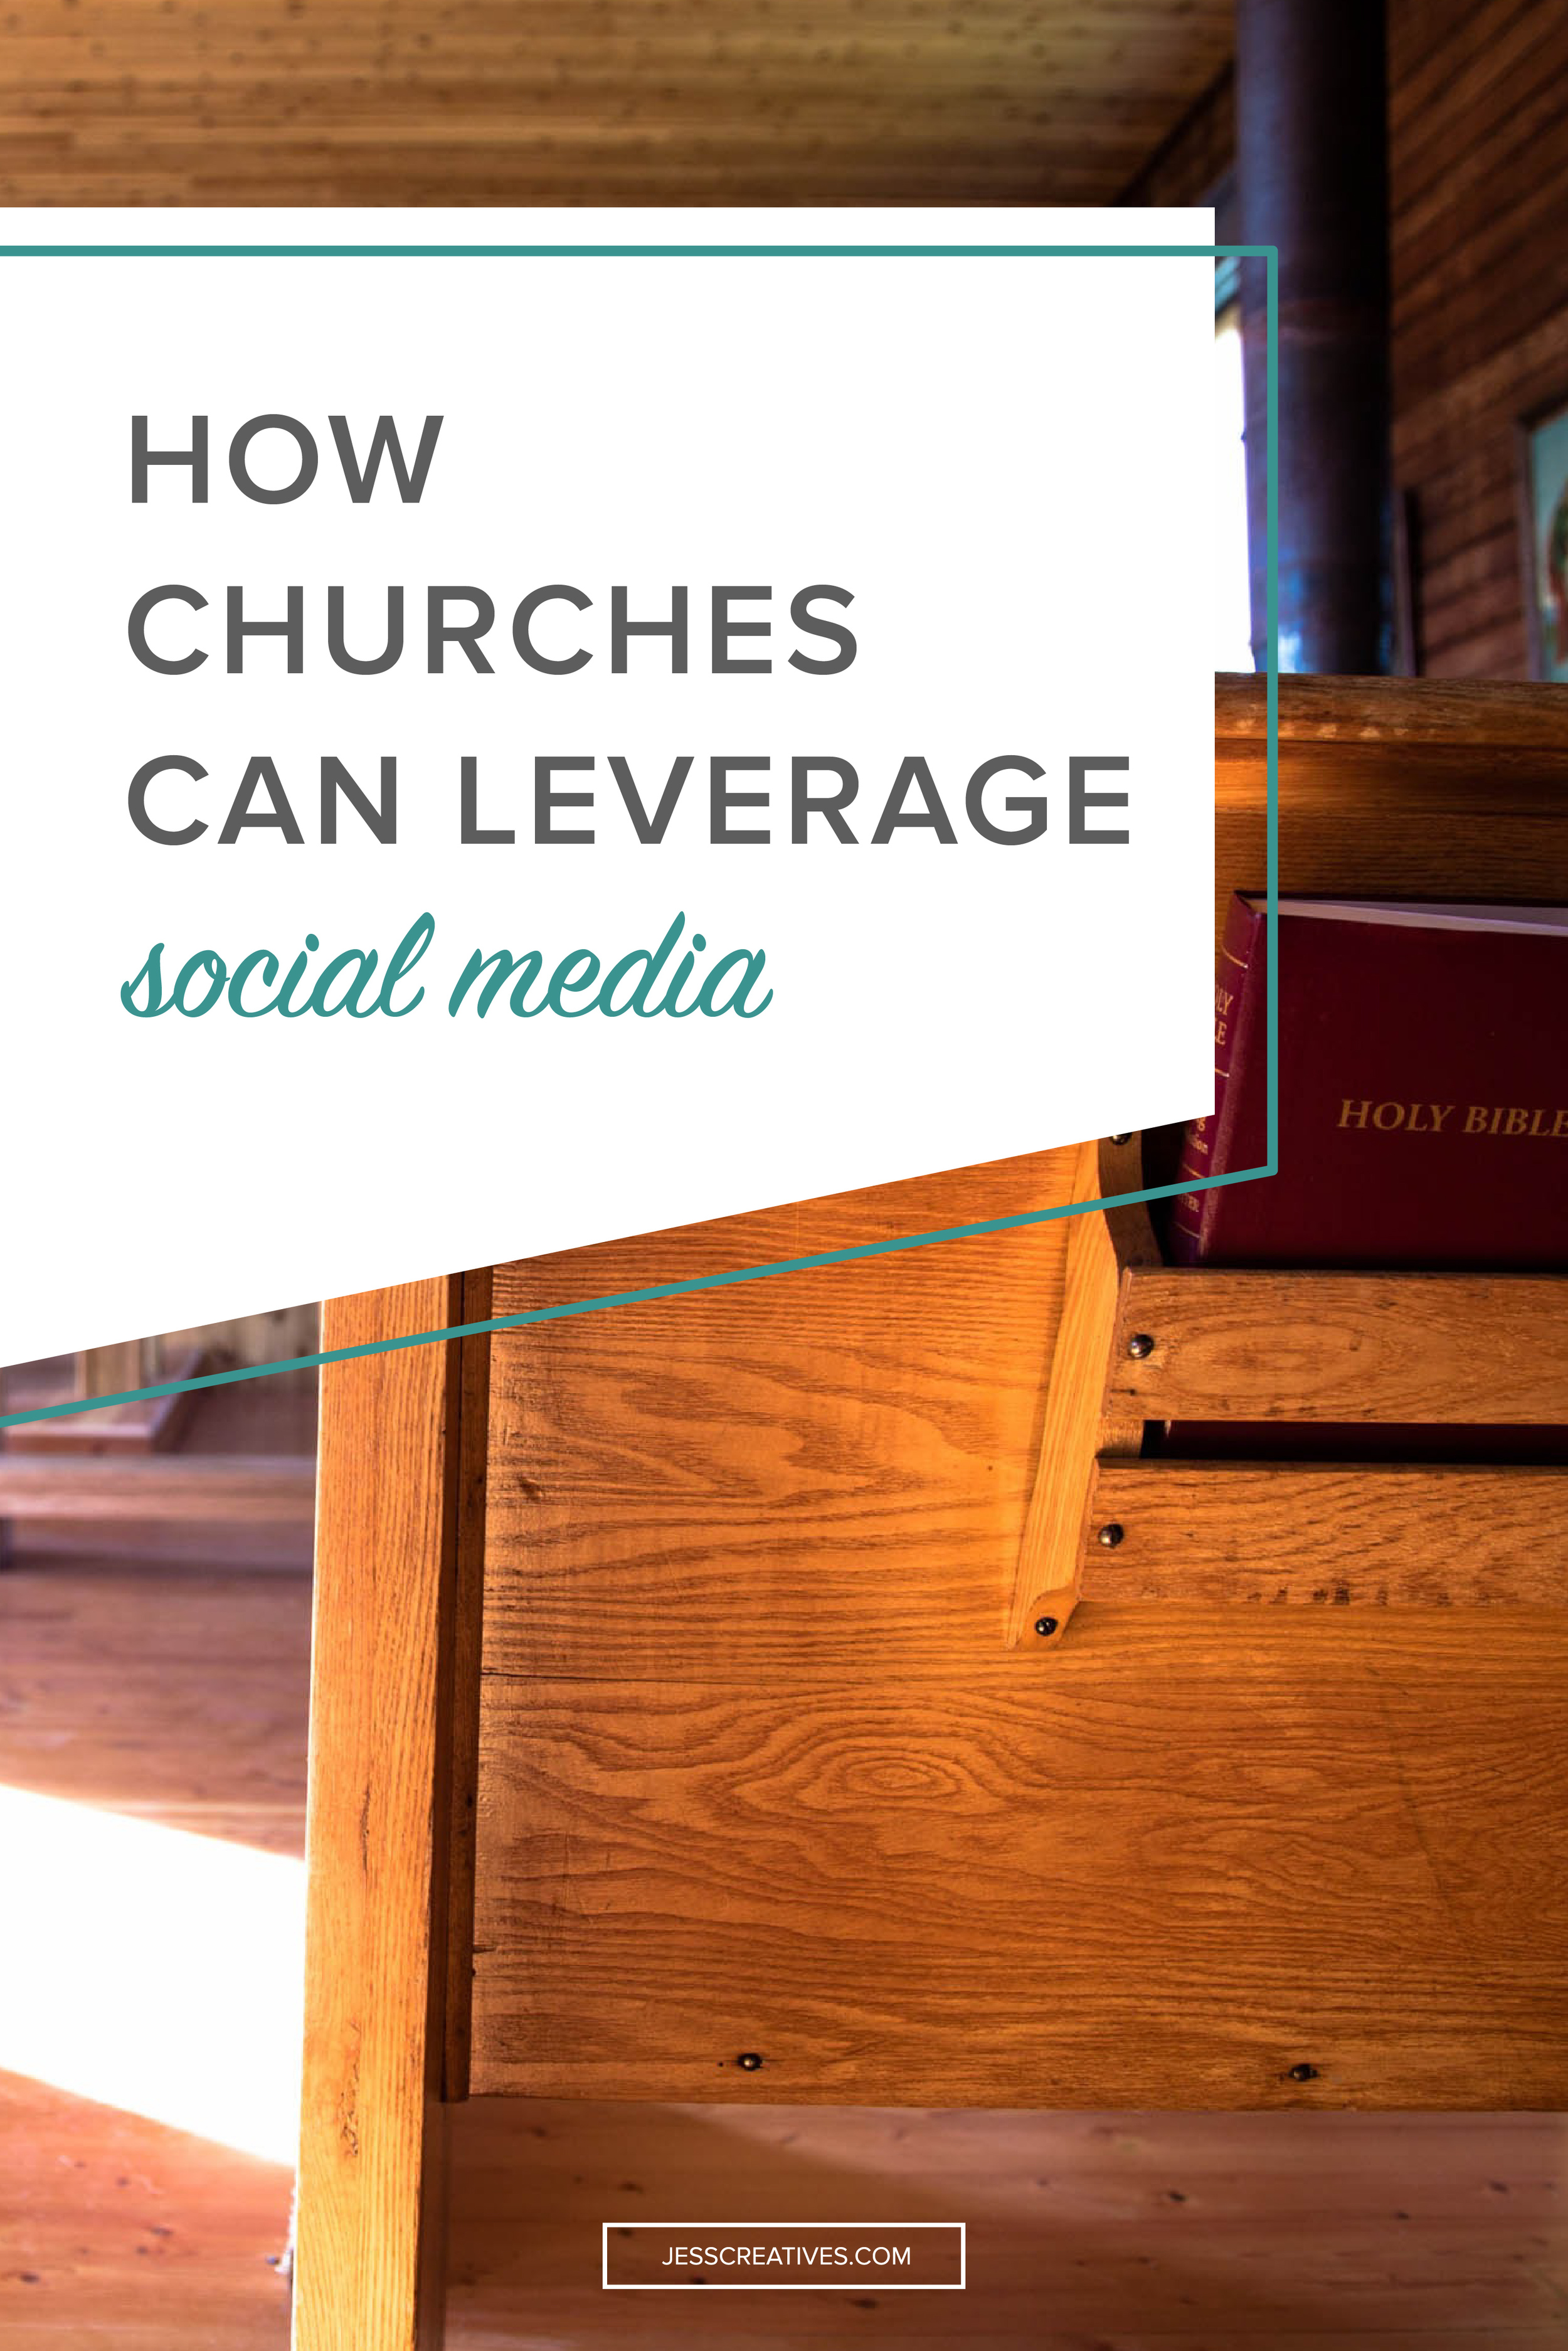 How Churches Can Leverage Social Media